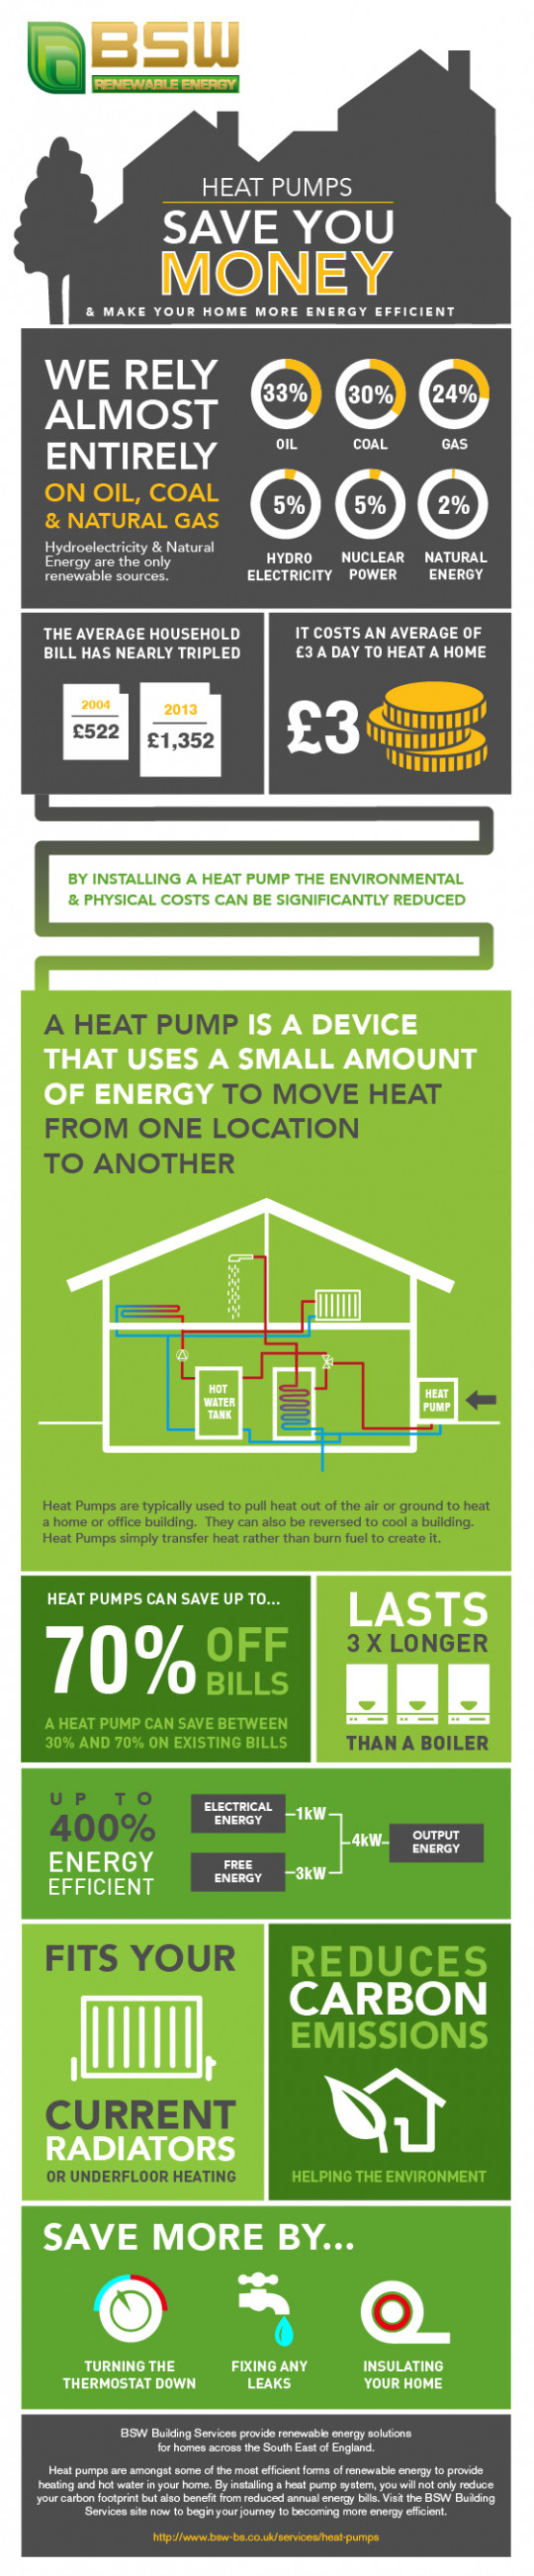 How Heat Pumps Can Save You Money